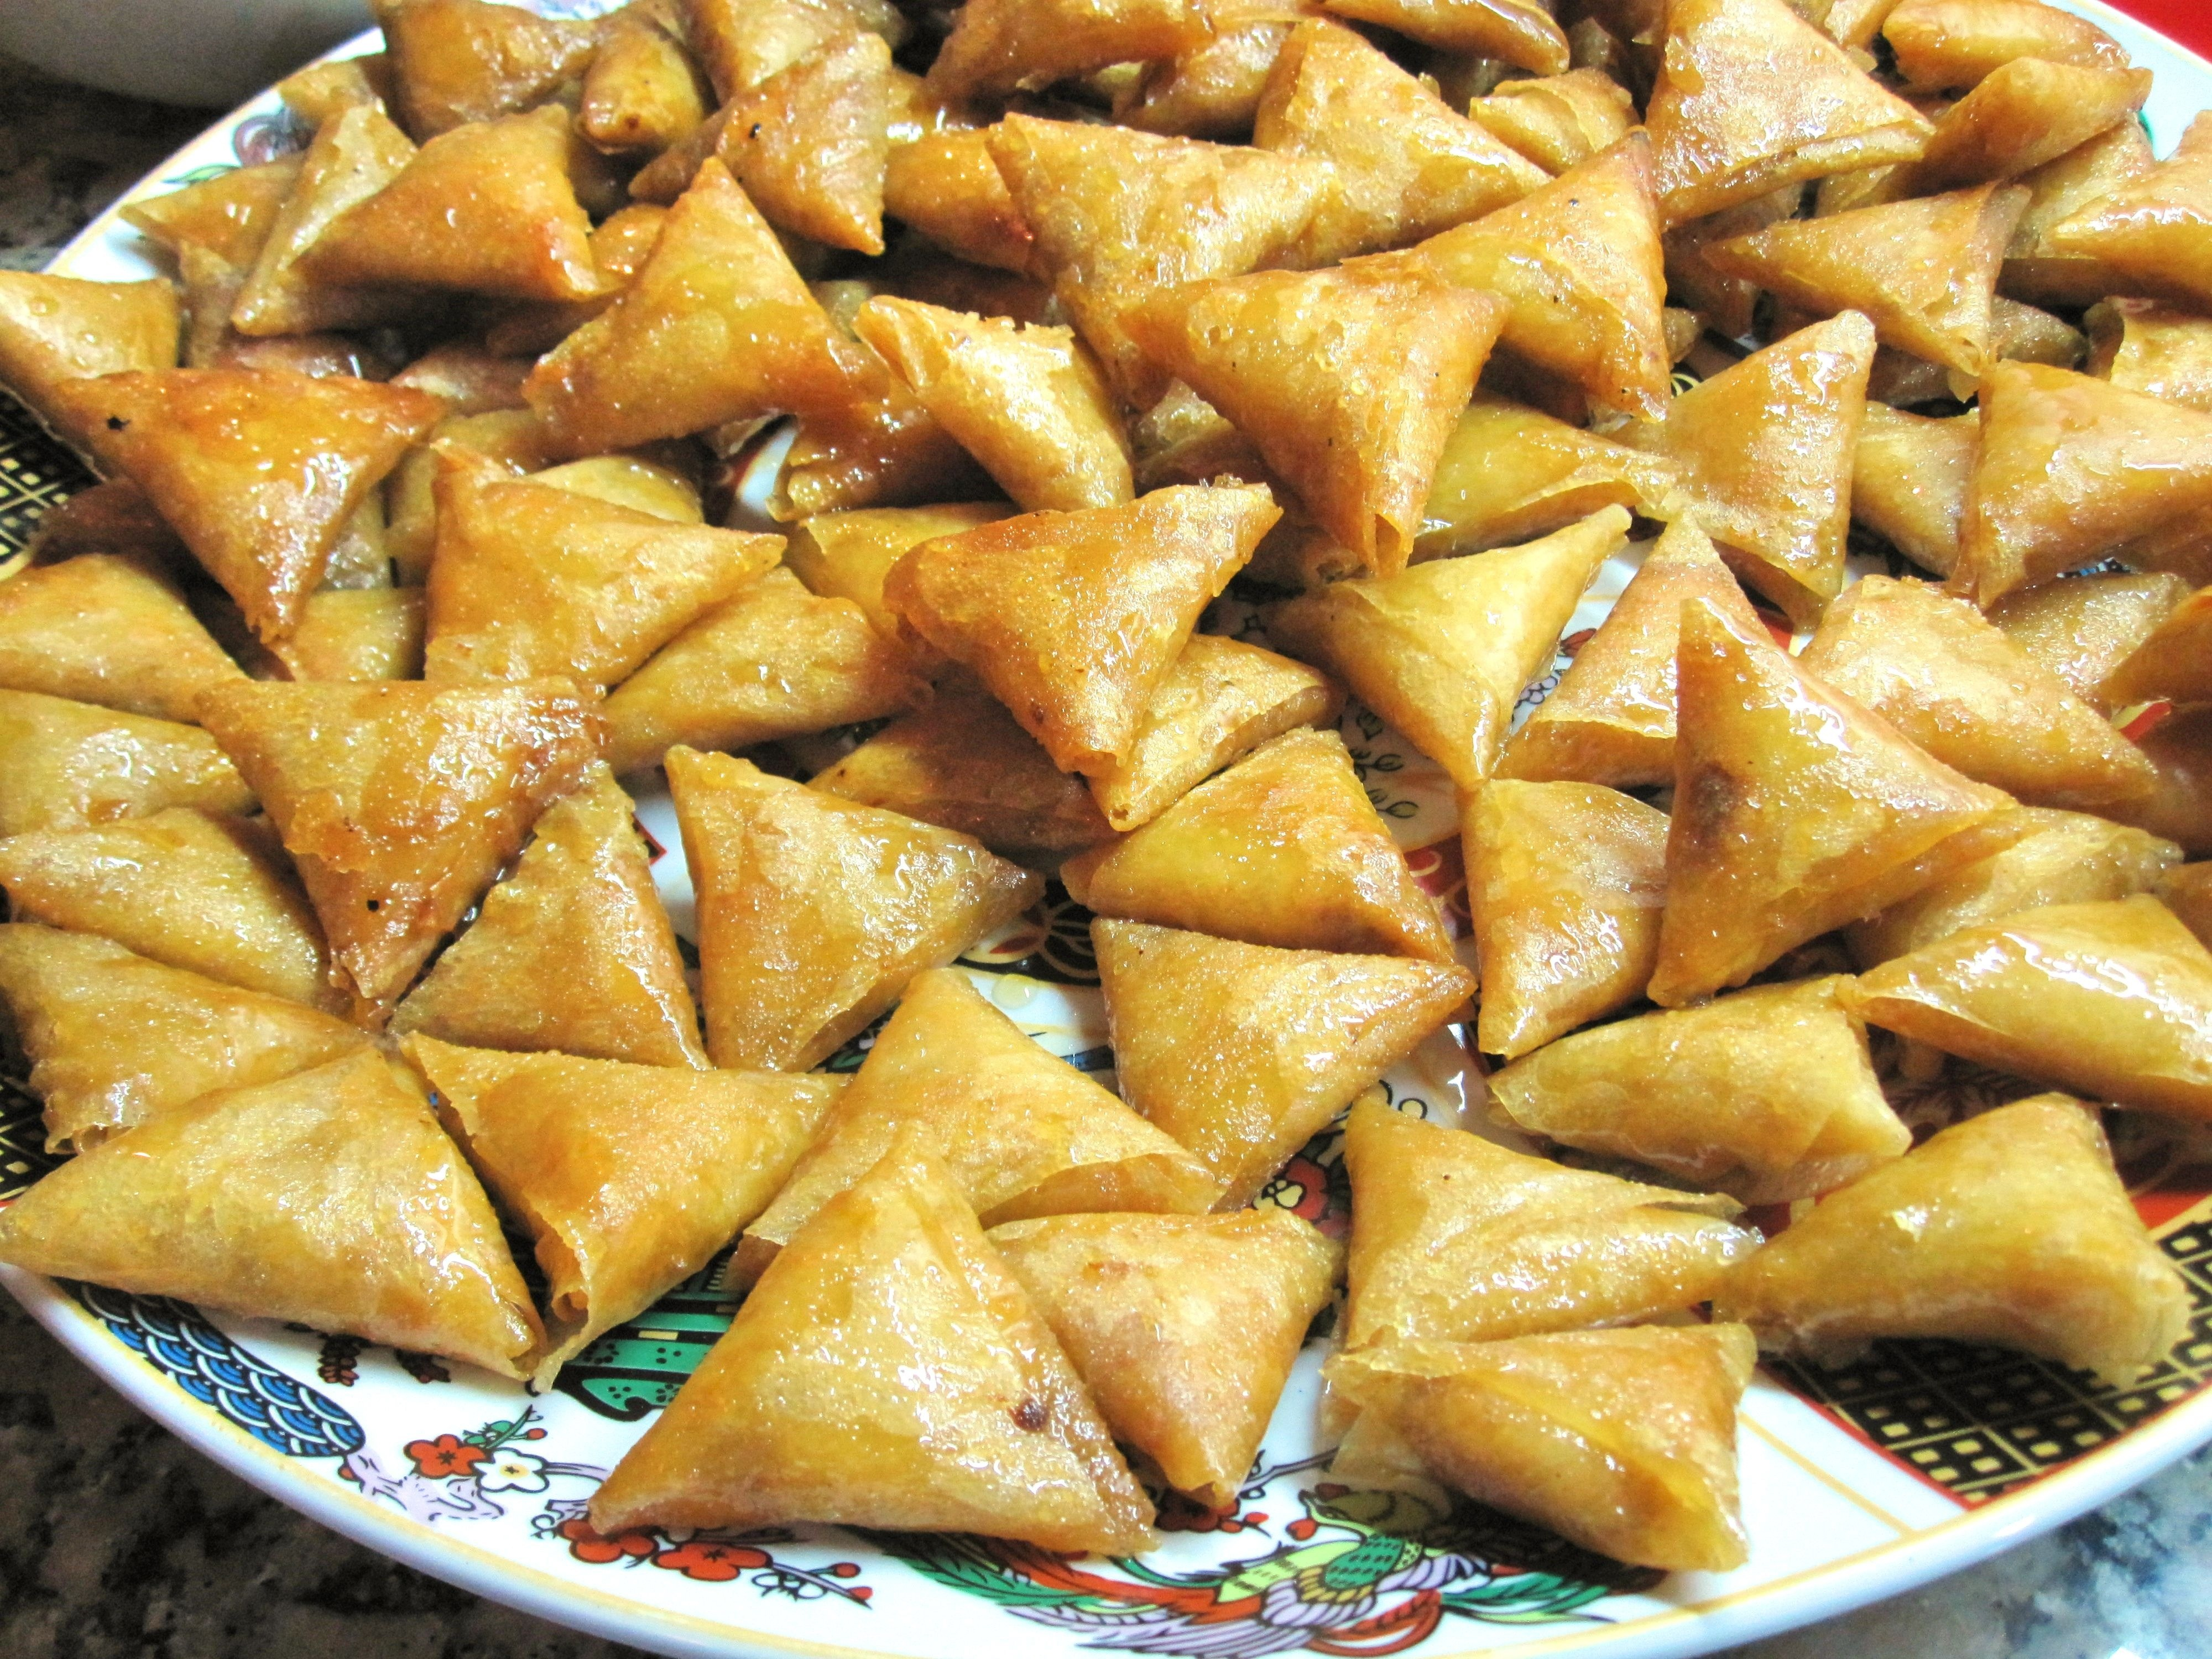 A platter of almond briouats, a Moroccan triangular shaped pastry filled with almond paste.